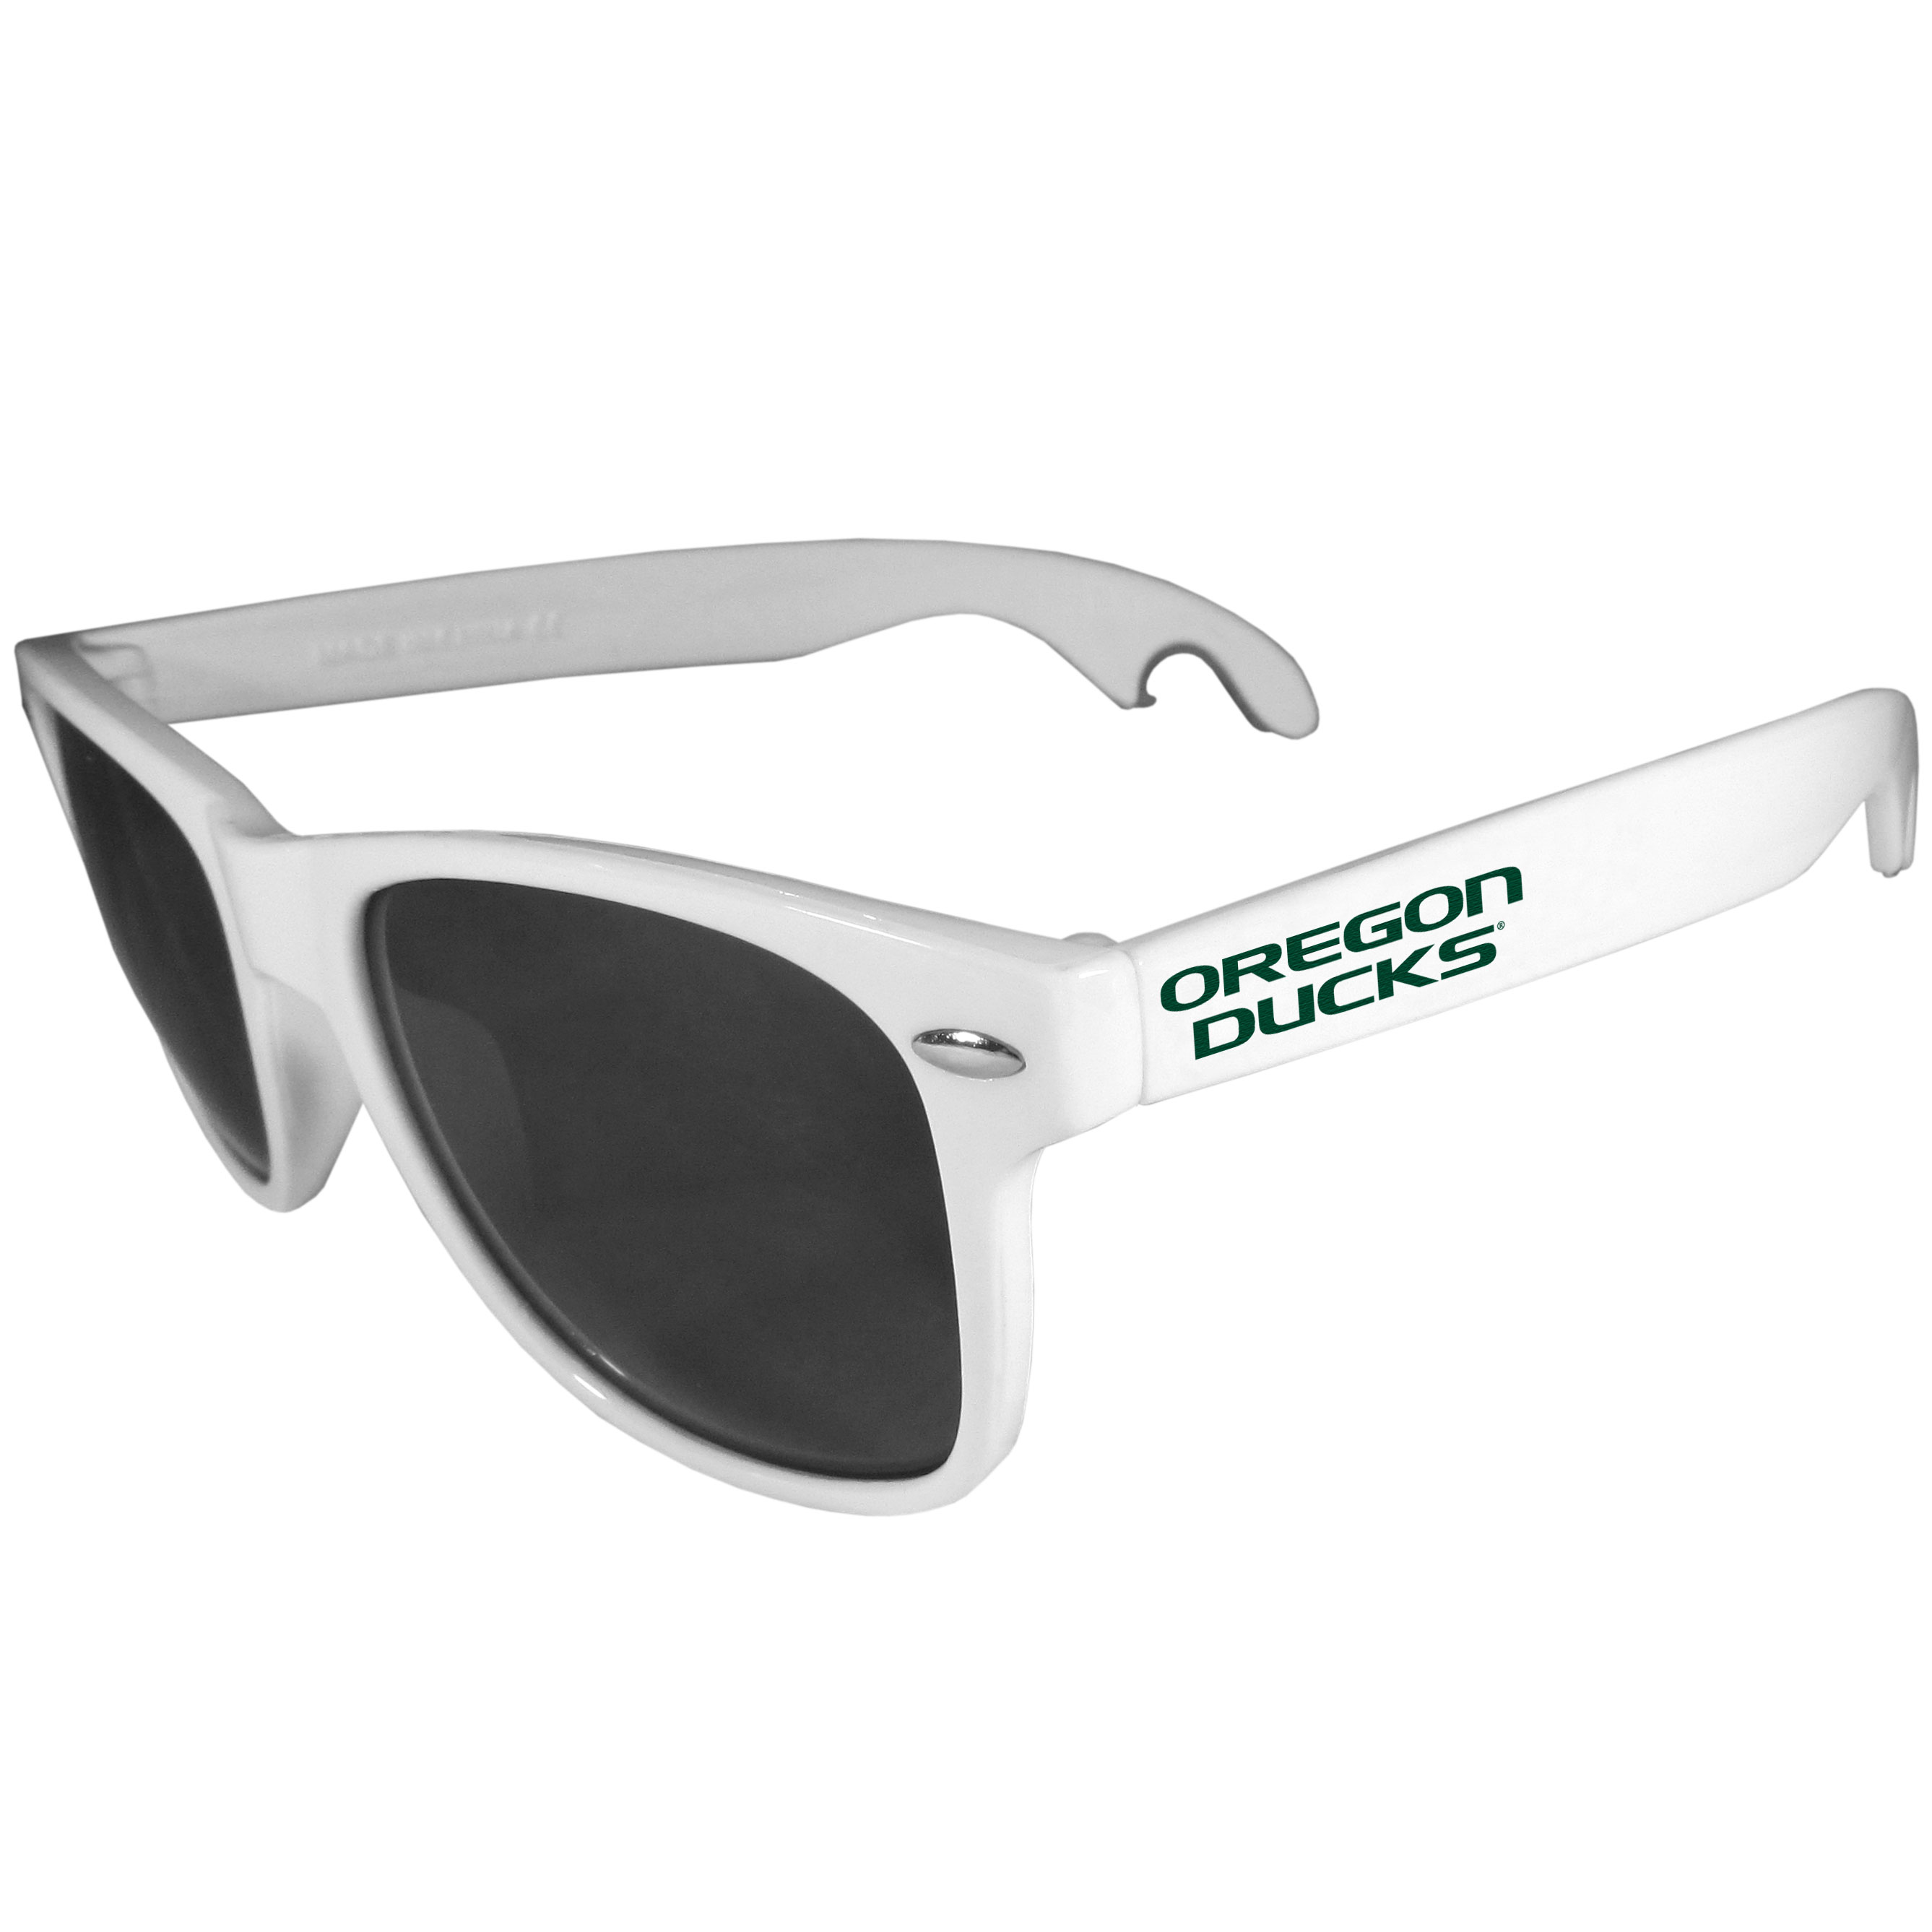 Oregon Ducks Beachfarer Bottle Opener Sunglasses, White - Seriously, these sunglasses open bottles! Keep the party going with these amazing Oregon Ducks bottle opener sunglasses. The stylish retro frames feature team designs on the arms and functional bottle openers on the end of the arms. Whether you are at the beach or having a backyard BBQ on game day, these shades will keep your eyes protected with 100% UVA/UVB protection and keep you hydrated with the handy bottle opener arms.